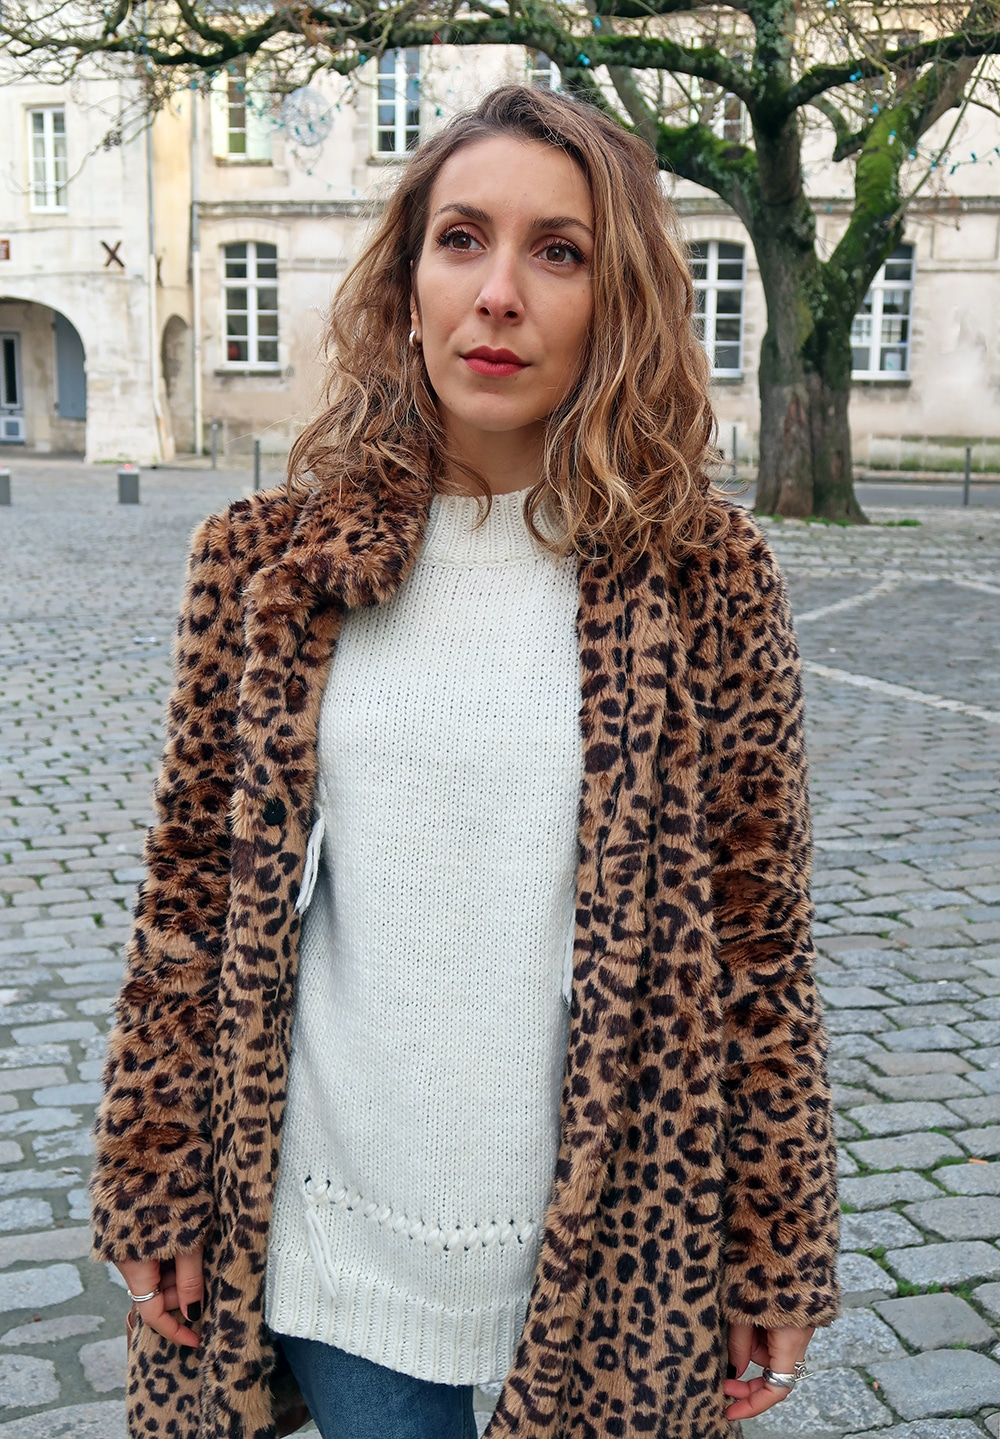 mum jeans cheap monday manteau leopard zara